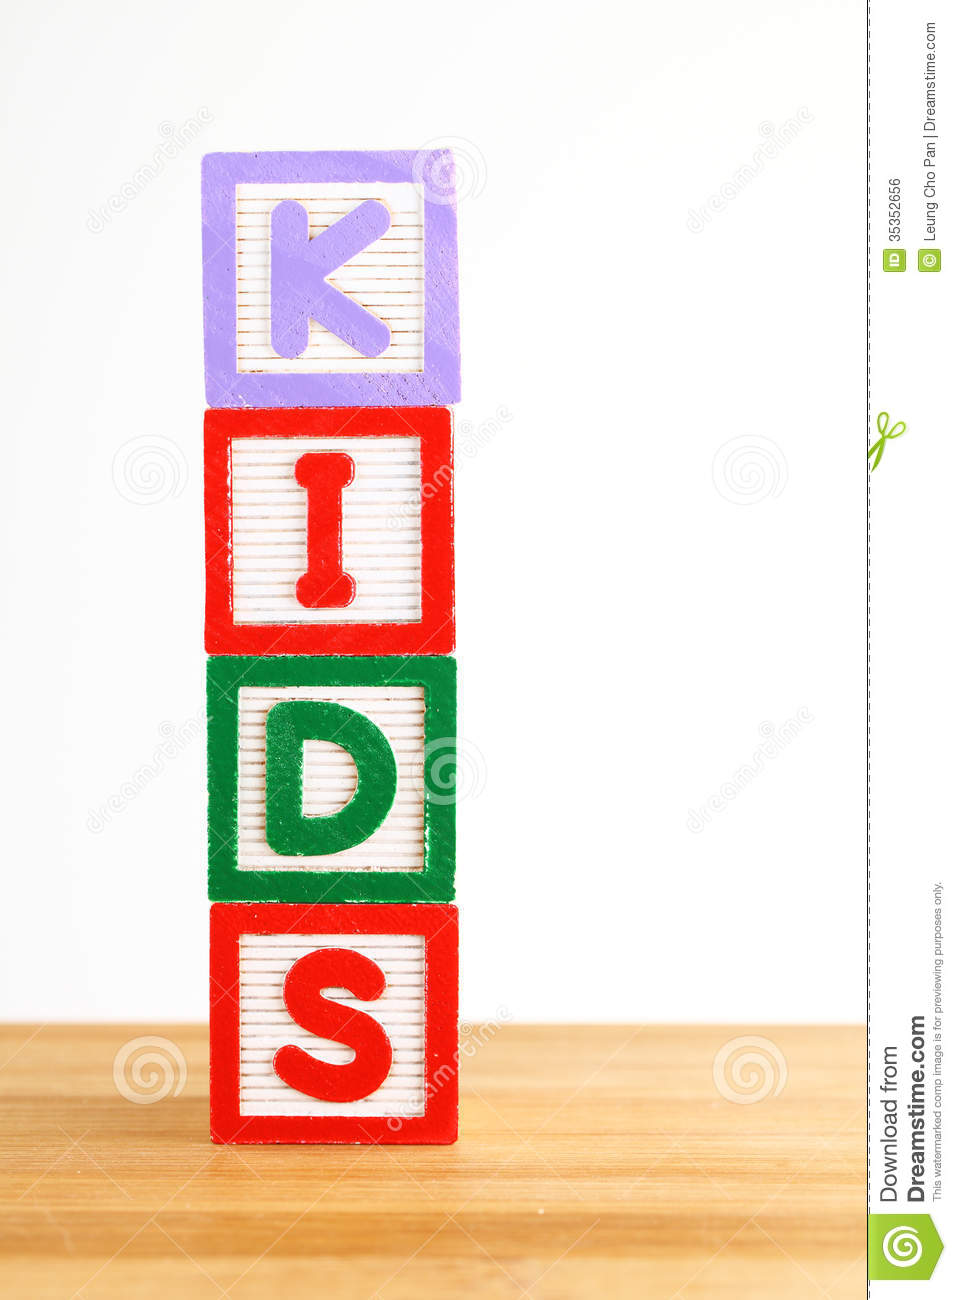 Alphabet Building Blocks That Spelling The Word Kids Stock ...